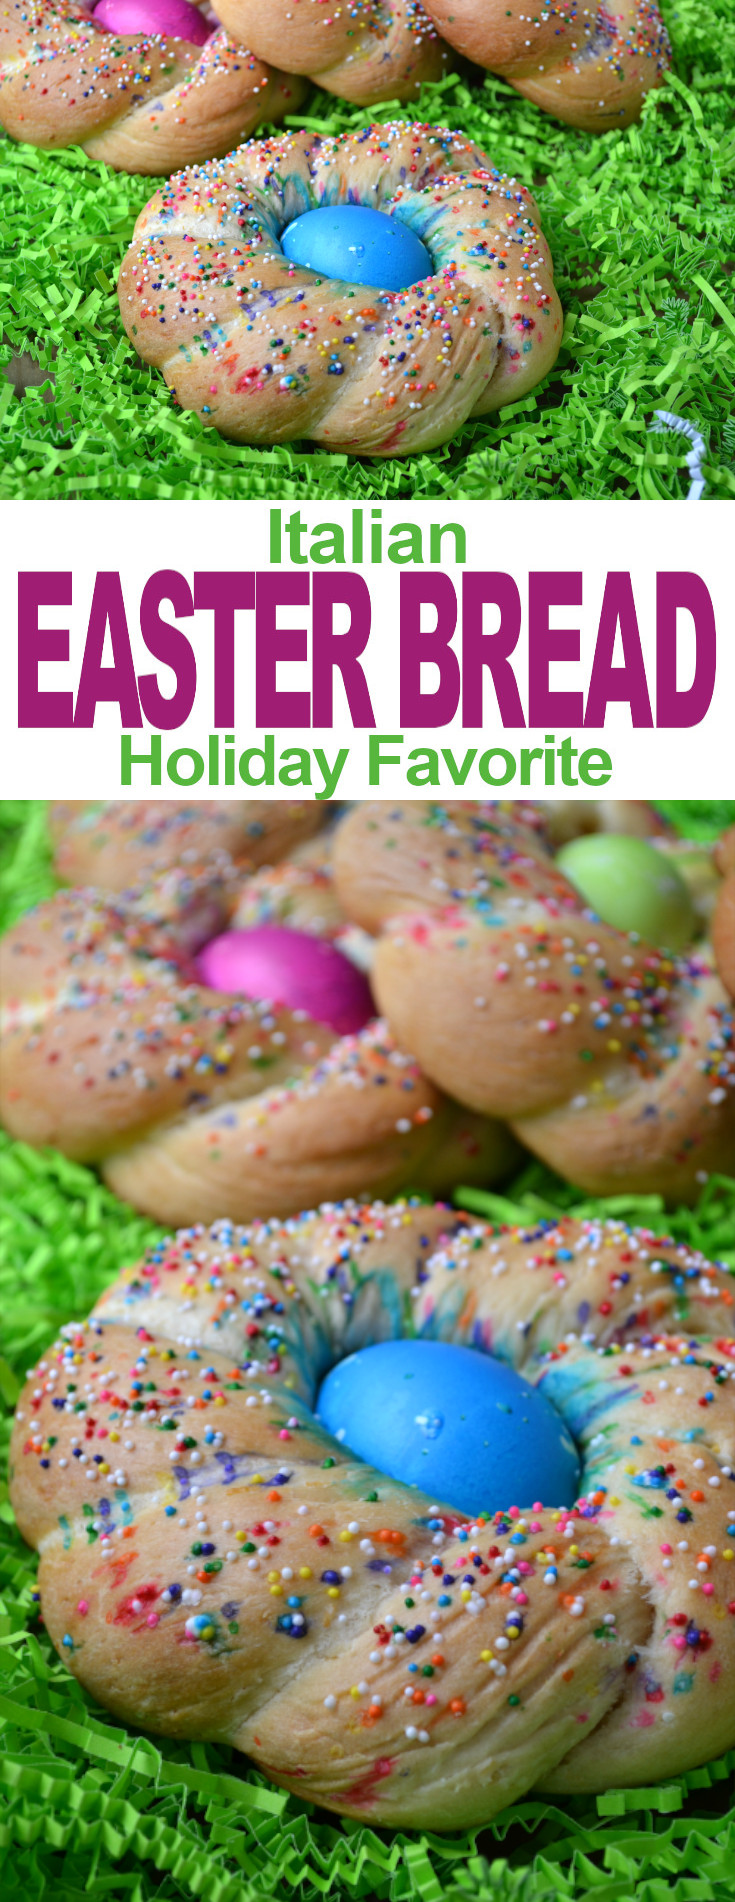 A slightly sweet, lemony holiday bread that's light and fluffy and baked around a brightly colored Easter egg